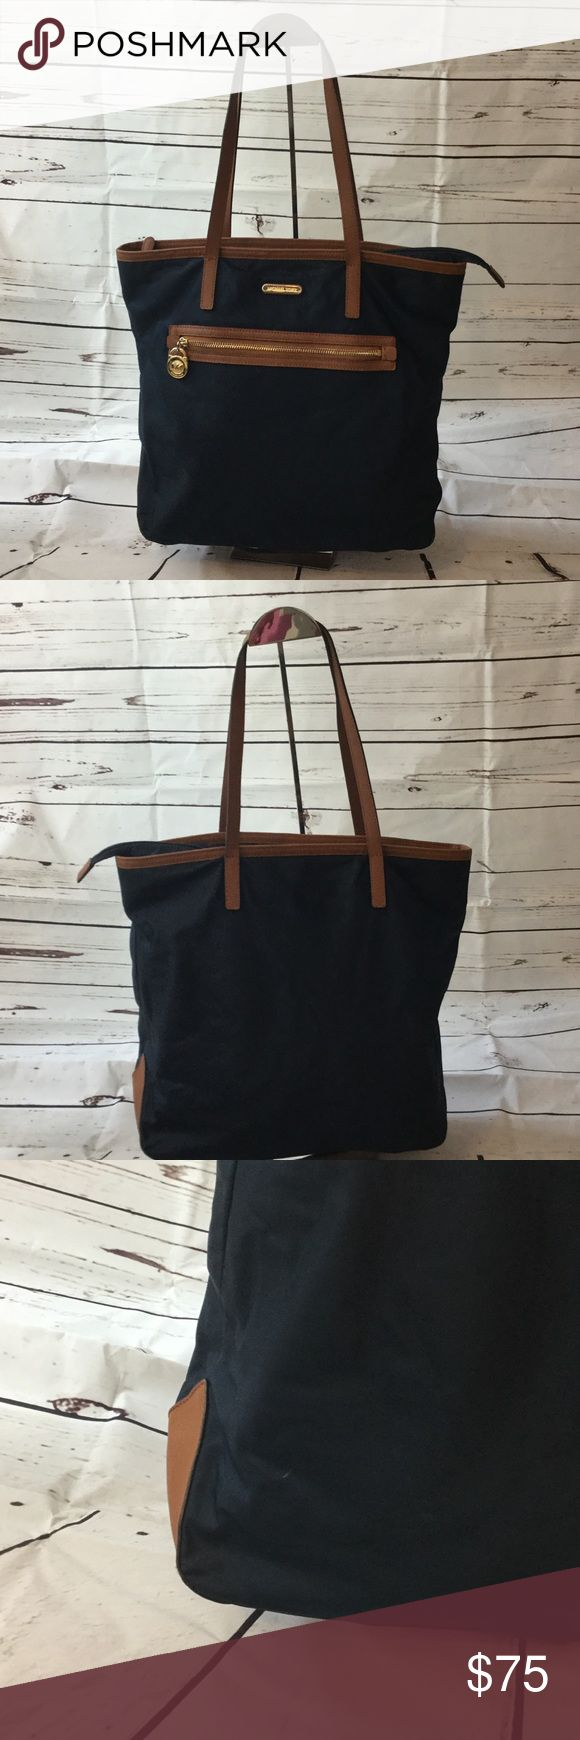 Michael Michael Kors Kempton Large Nylon Tote Bag Michael Michael Kors Kempton Large Nylon Tote Bag in Navy blue. In good condition (minor flaws pictured) Michael Kors Bags Totes